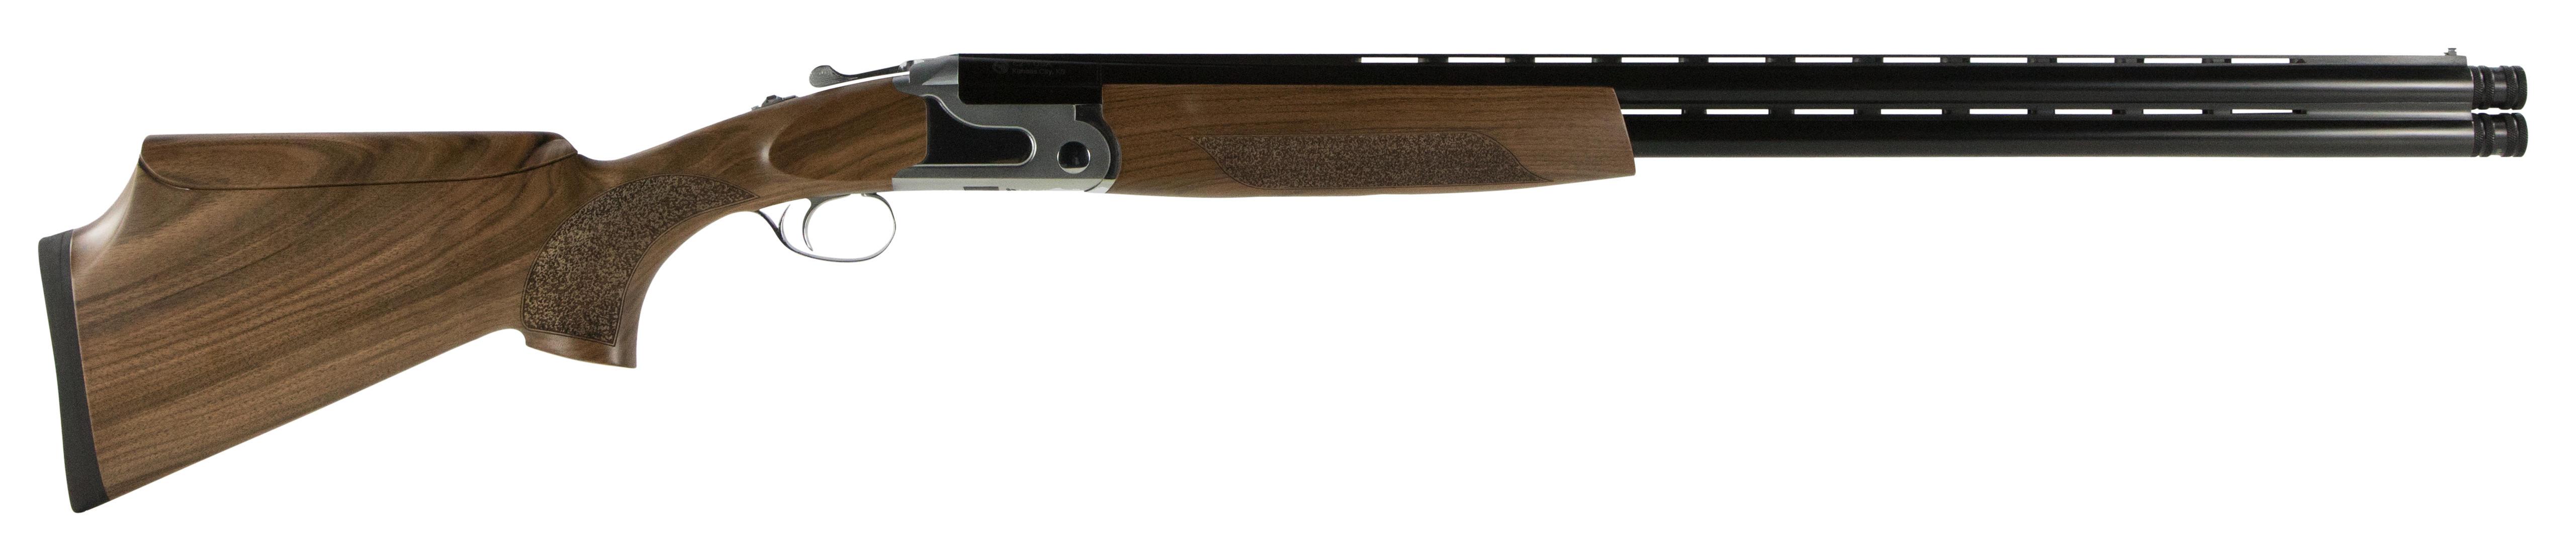 CZ-USA Sterling SCTP Southpaw - Left Handed Over/Under Shotgun 3'' 12 Gauge 28'' Two Toned Stainless/Blued - Turkish Walnut - Adjustable